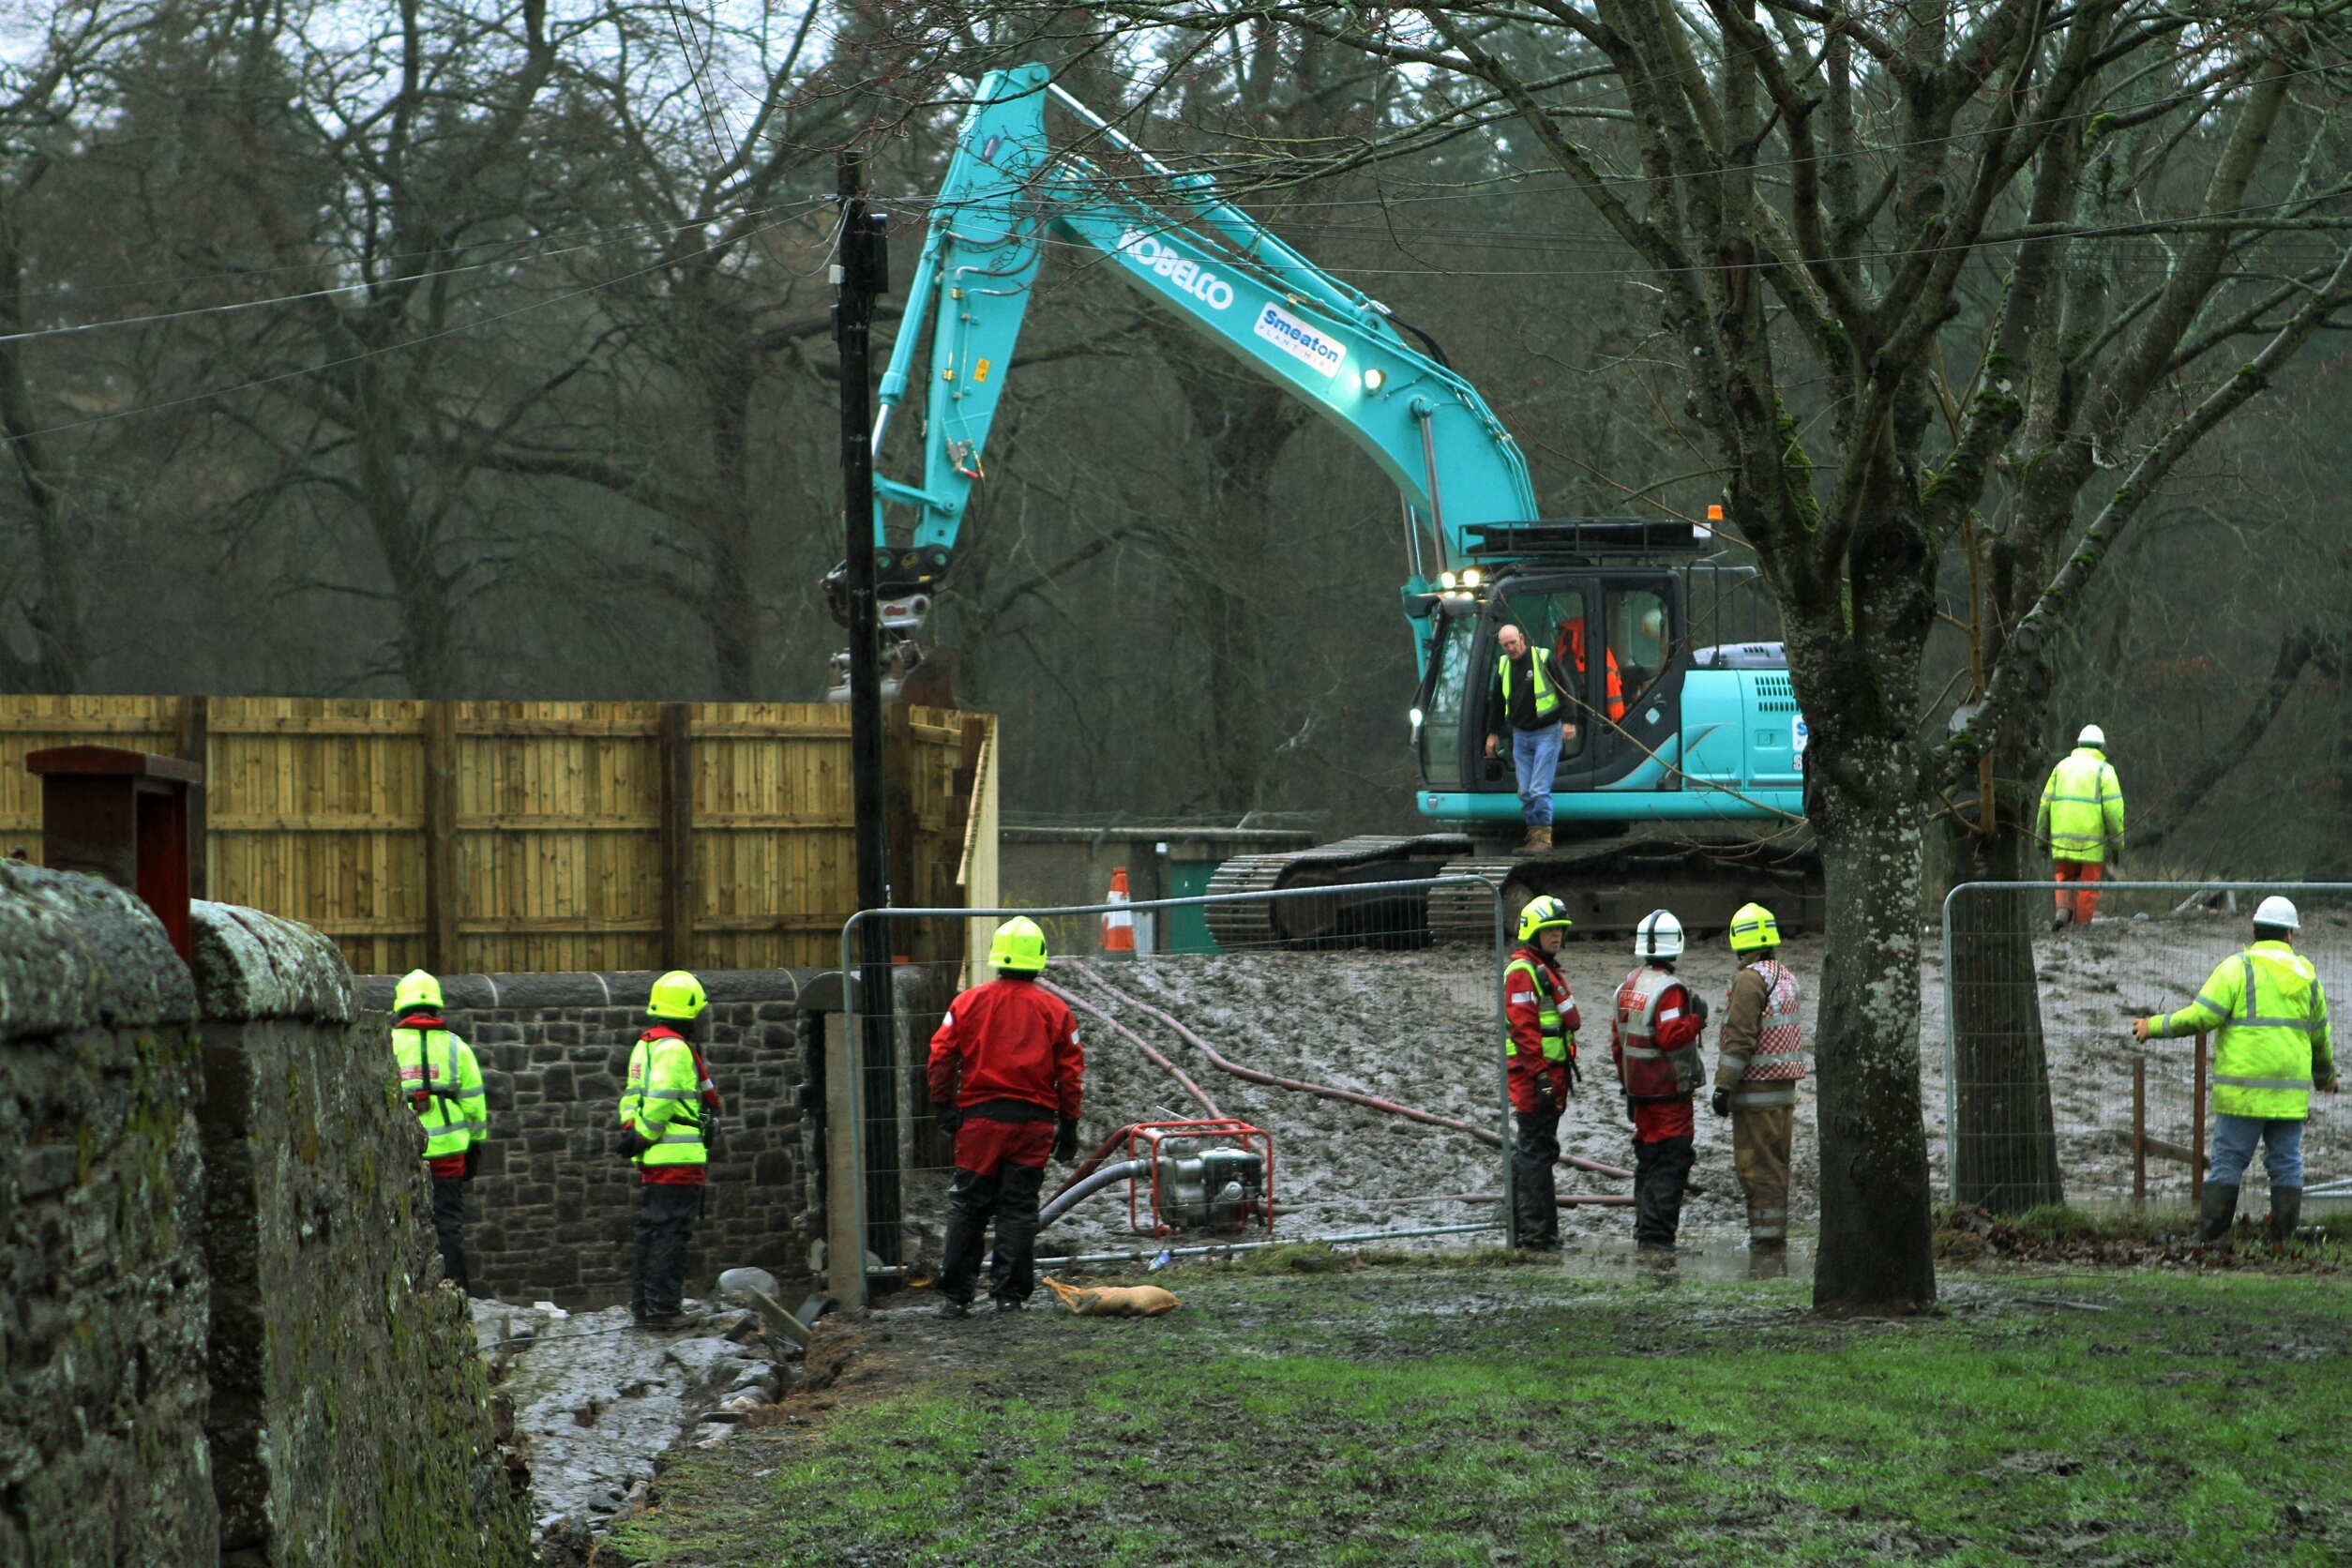 The road was closed as part of the flood prevention scheme work.